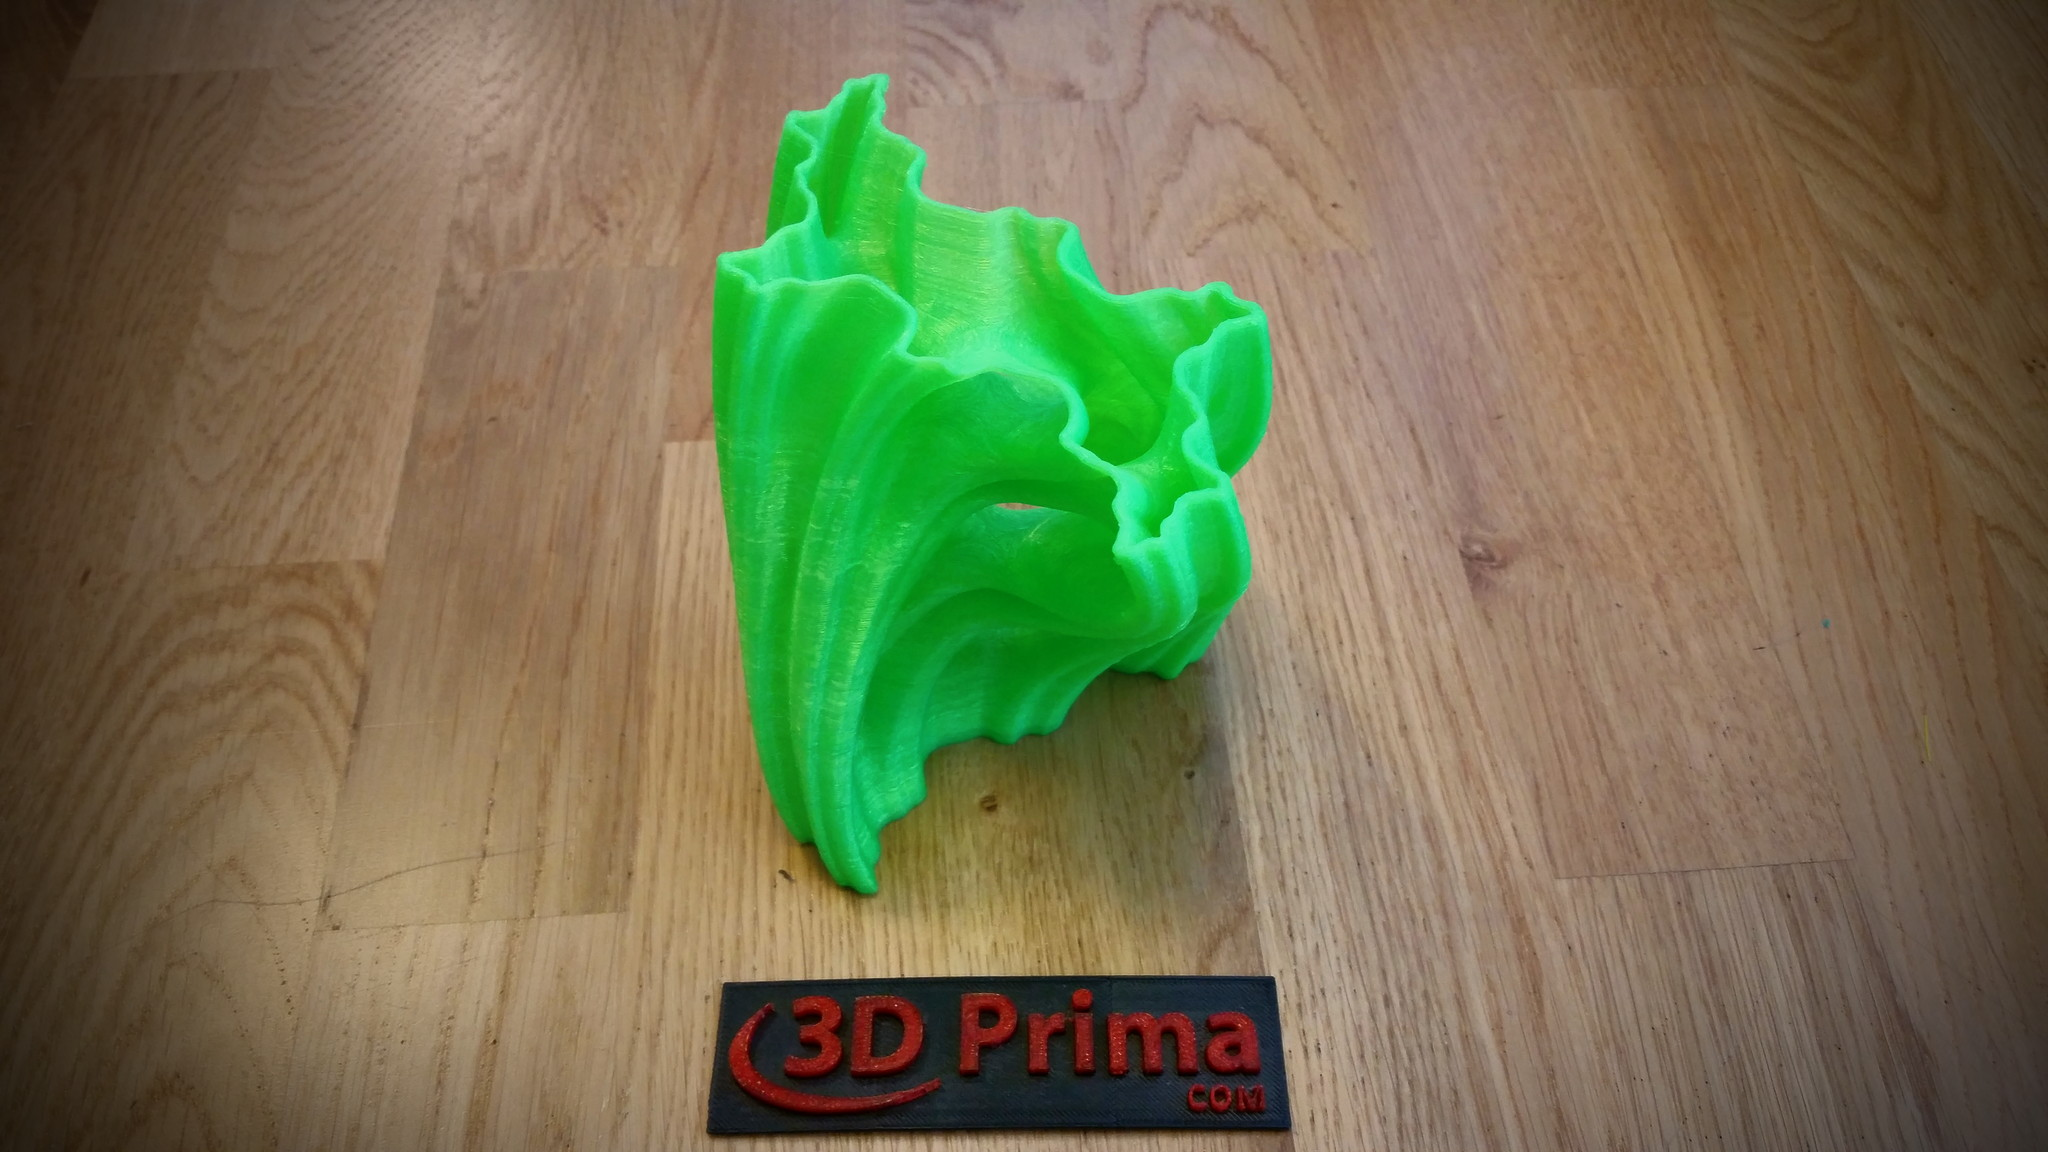 Printed with the Wanhao Duplicator 5